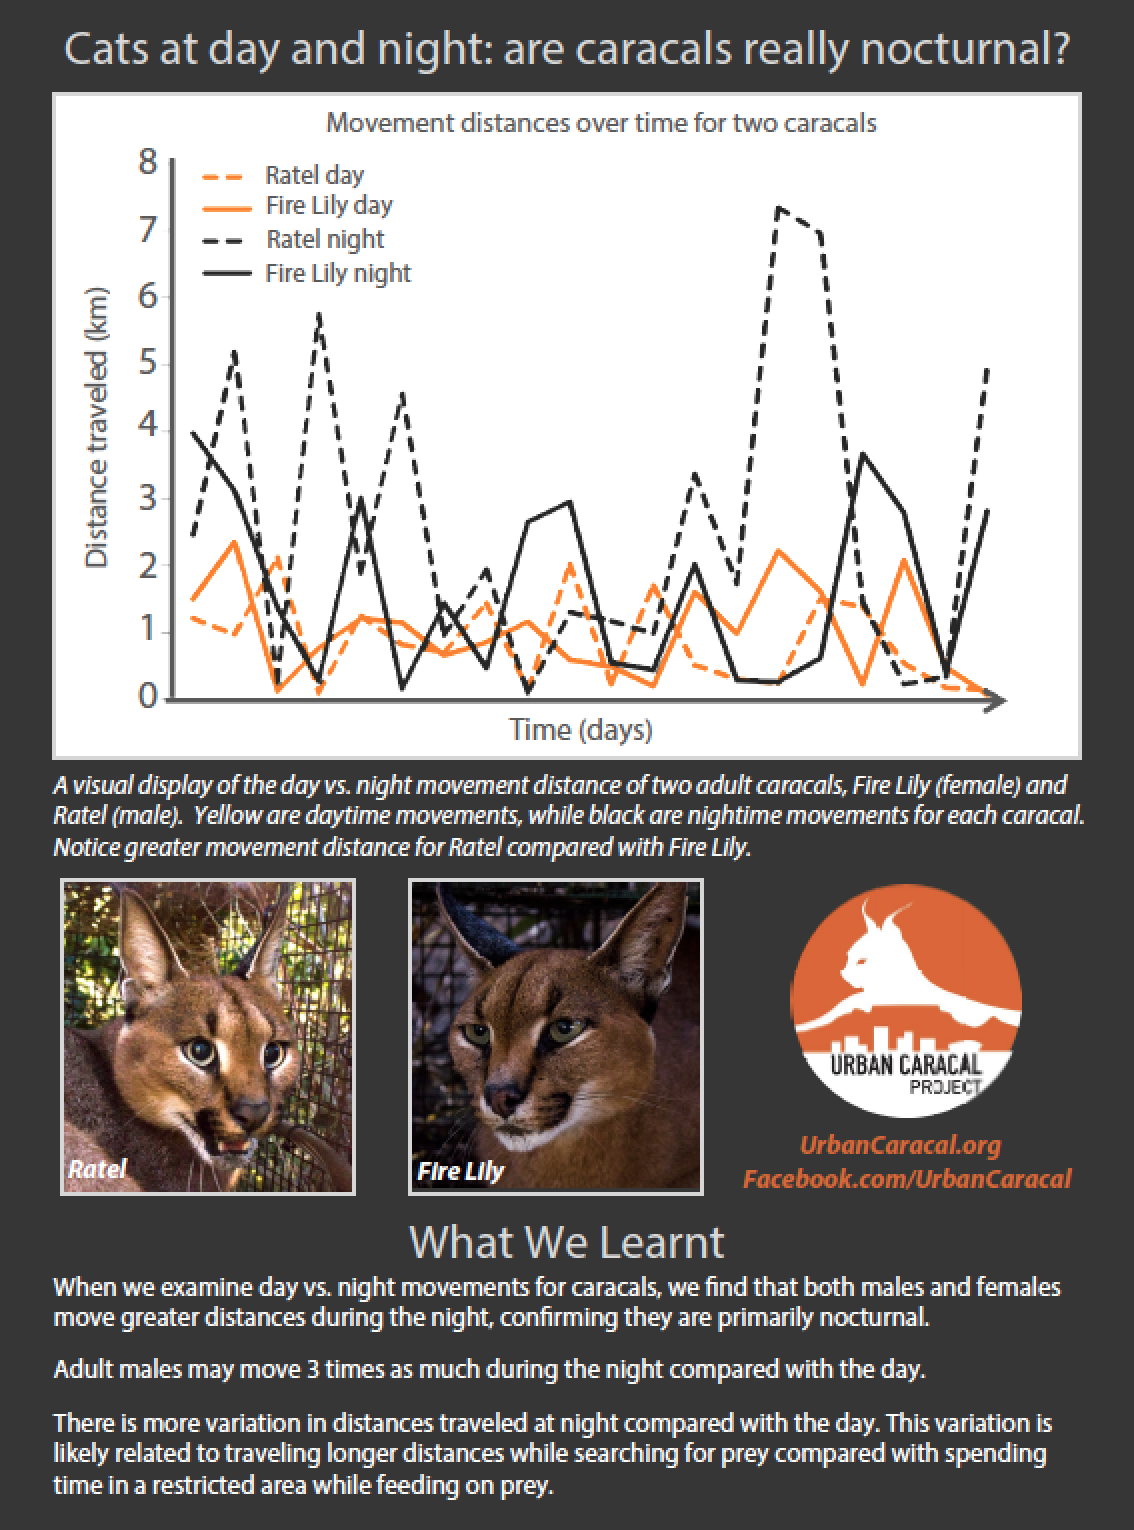 Cats at day and night: are caracals really nocturnal? - July 28, 2015